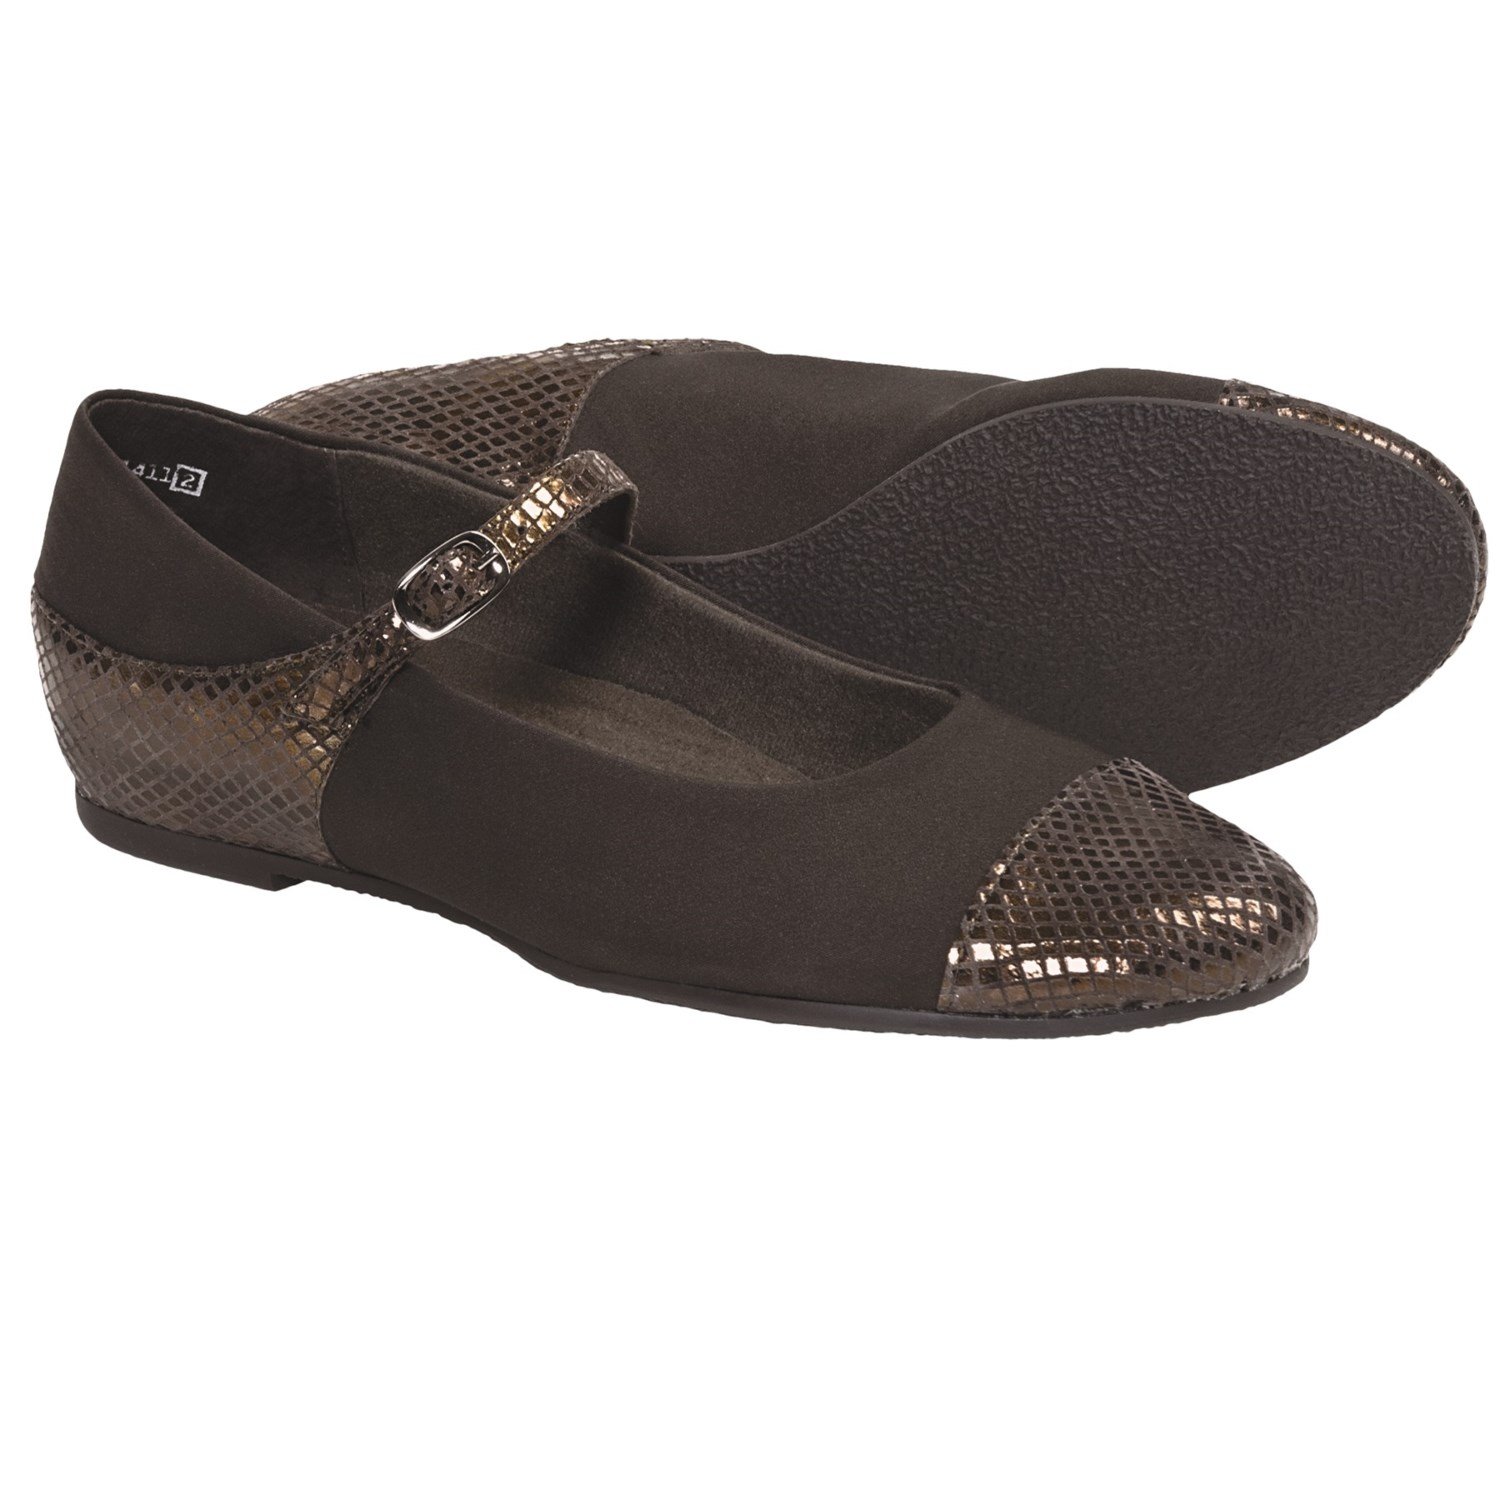 Munro American Serenity Shoes - Mary Janes (For Women) in Brown/Snake